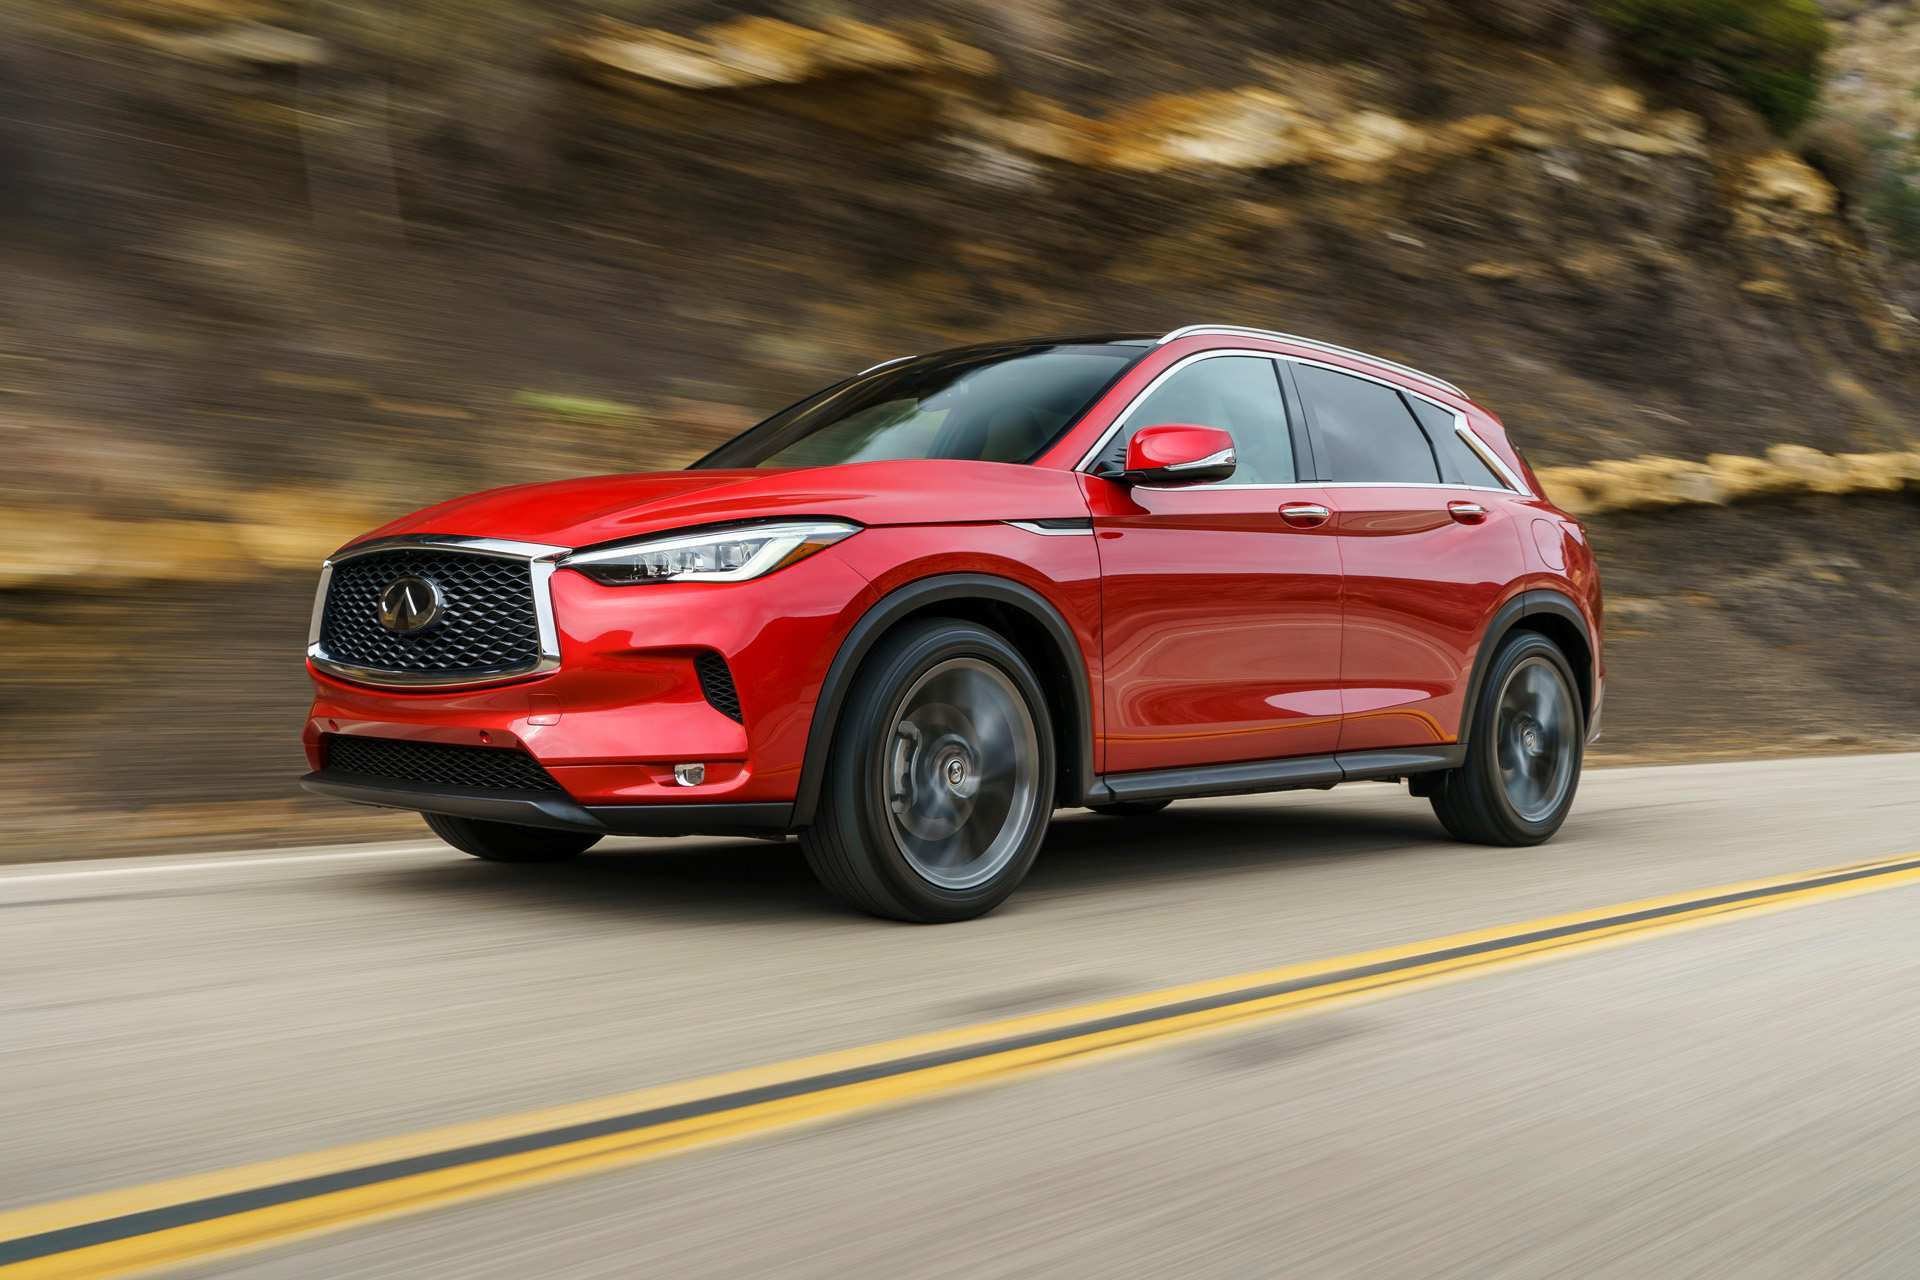 44 All New 2019 Infiniti QX50 Pricing